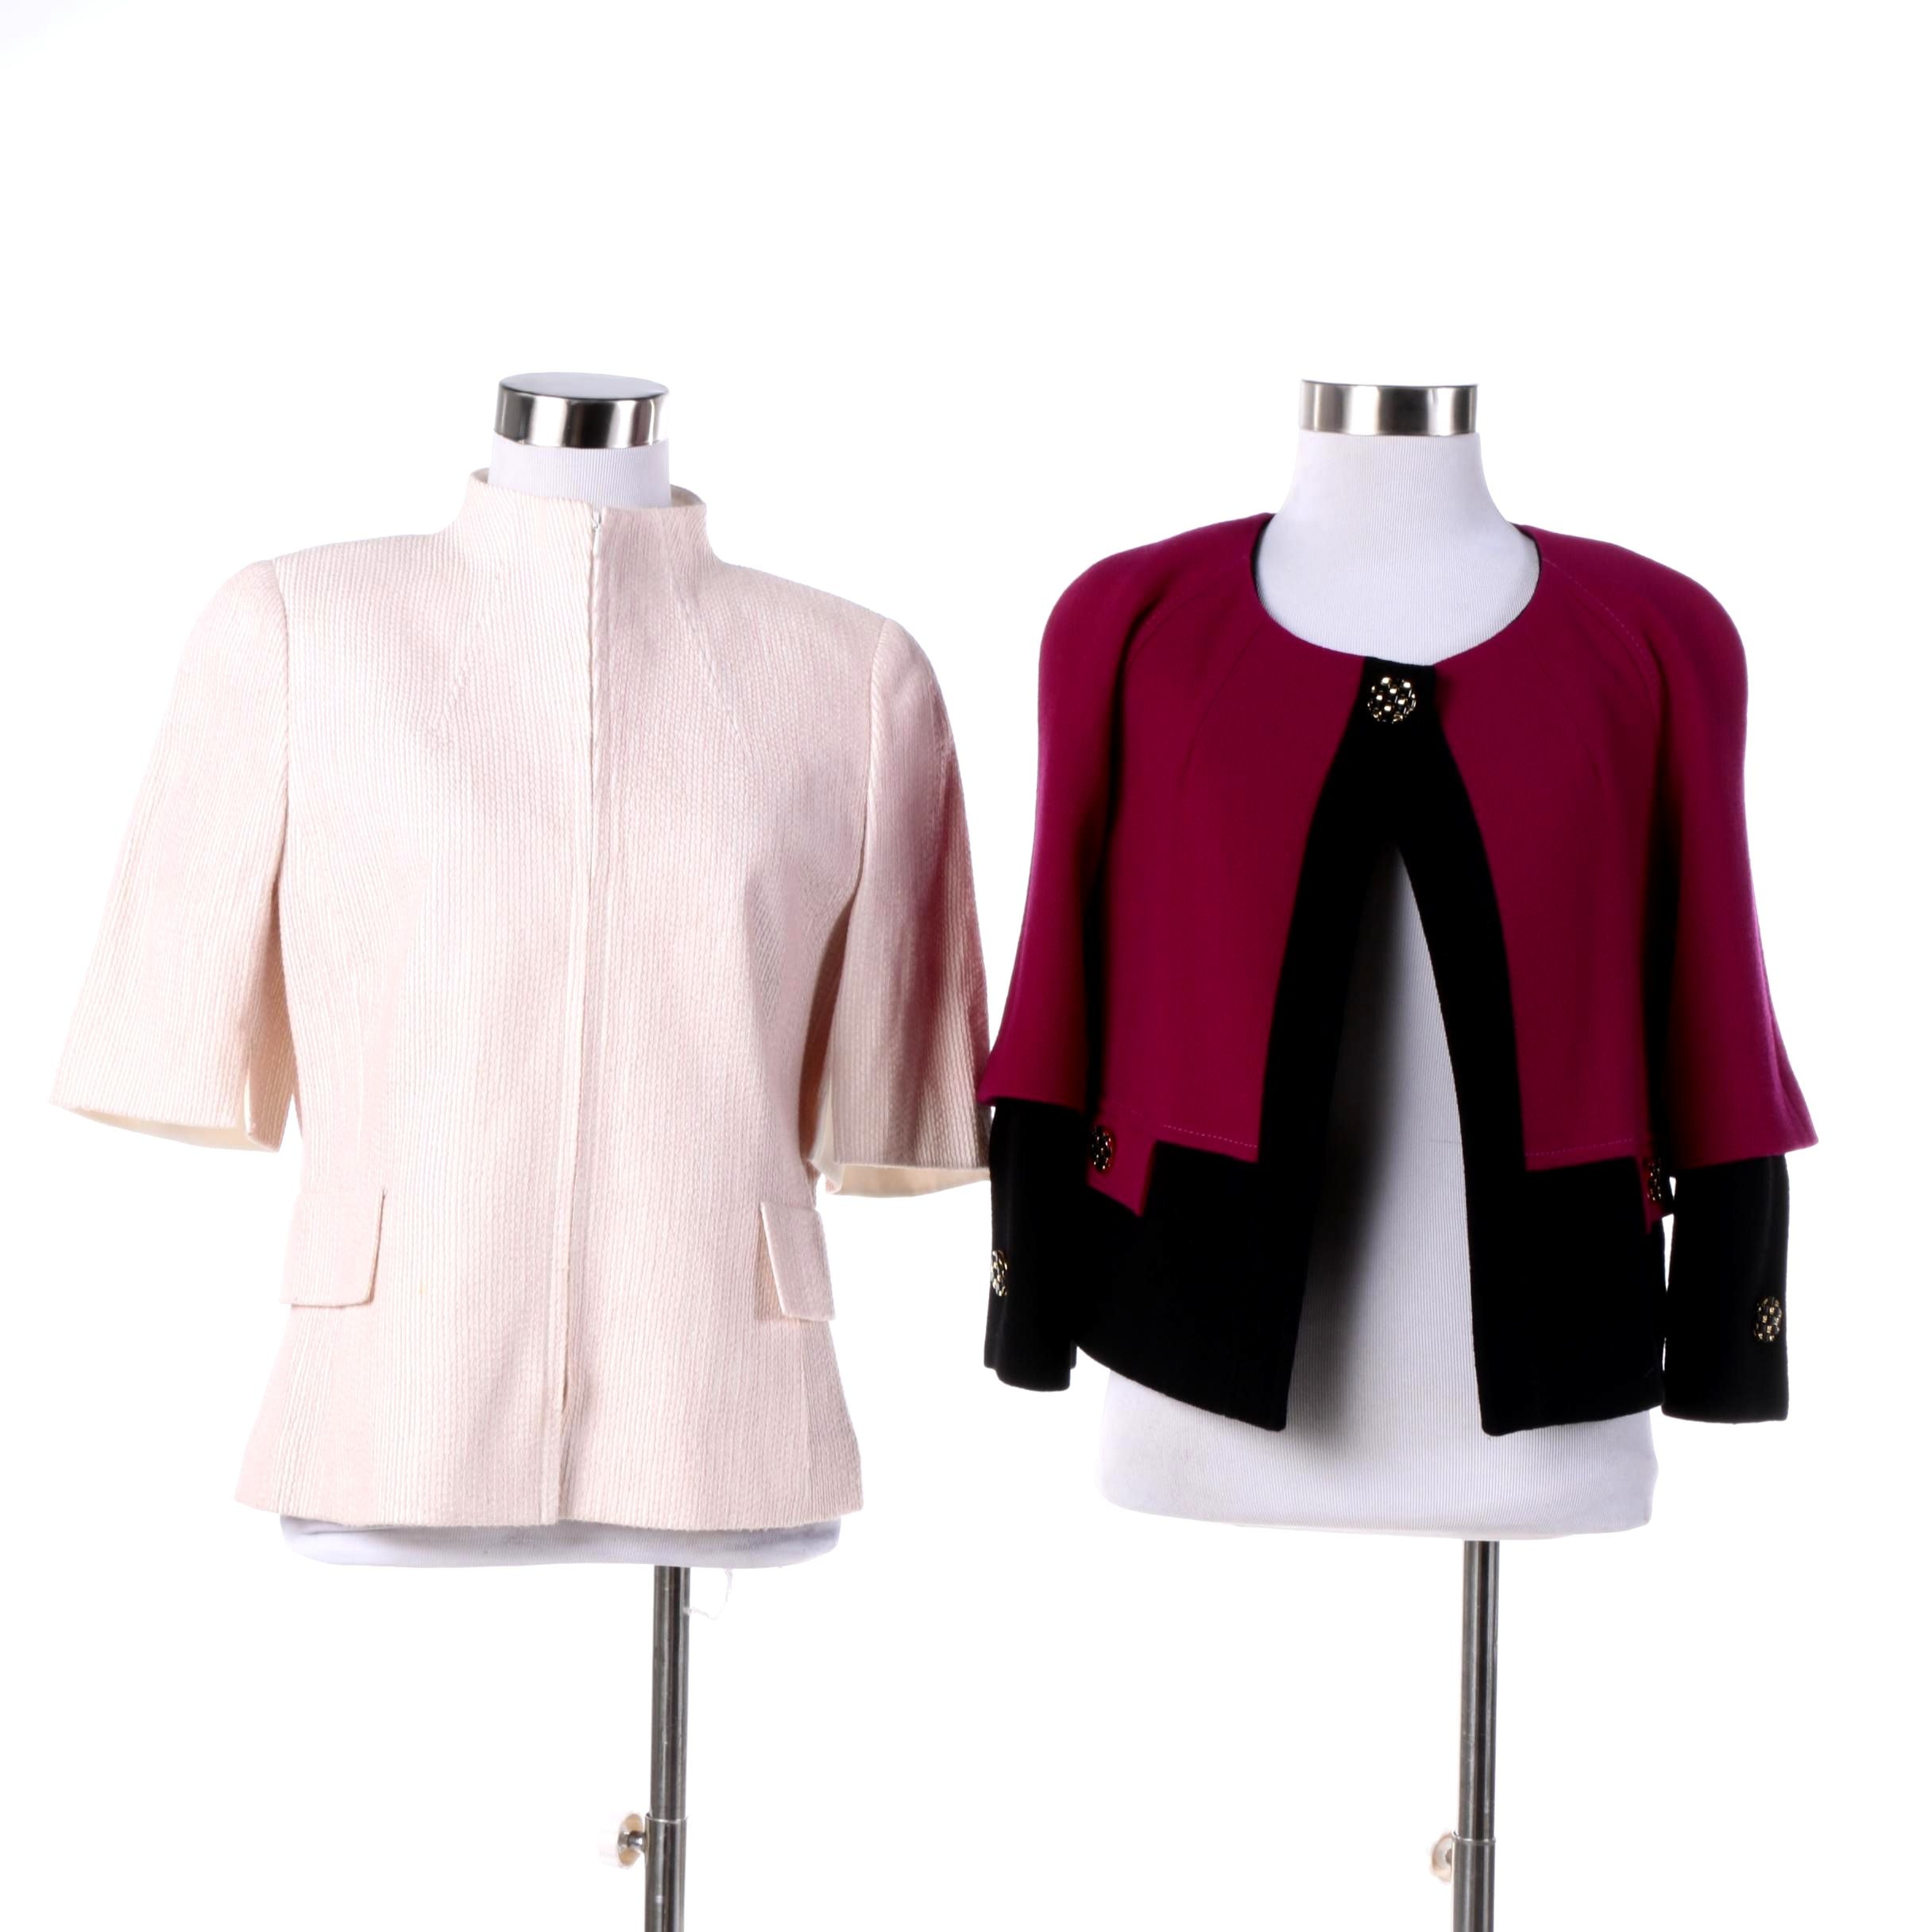 Akris Pink and White Silk Jacket and Weill Magenta and Black Wool Jacket